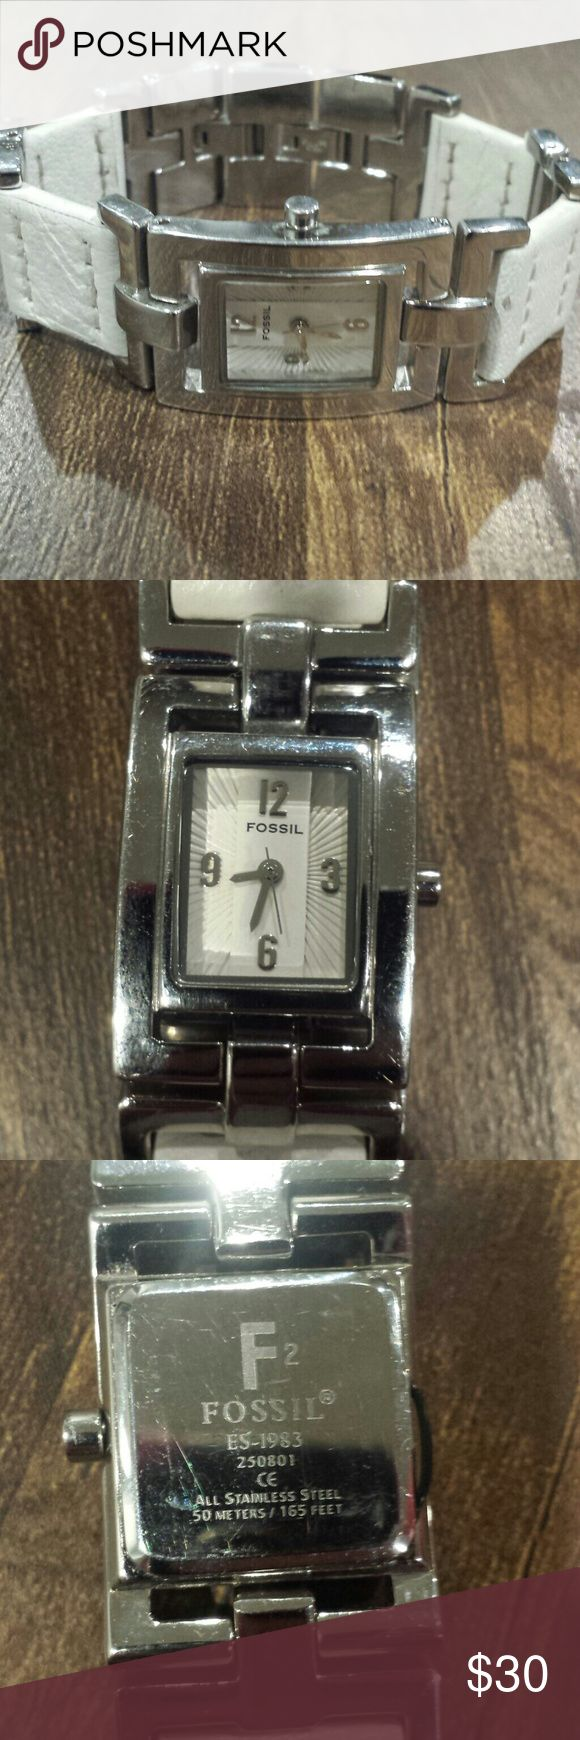 White and Silver Fossil Watch This is a used watch and needs a new battery. The silver part has some scratches. Box is not included. Fossil Accessories Watches